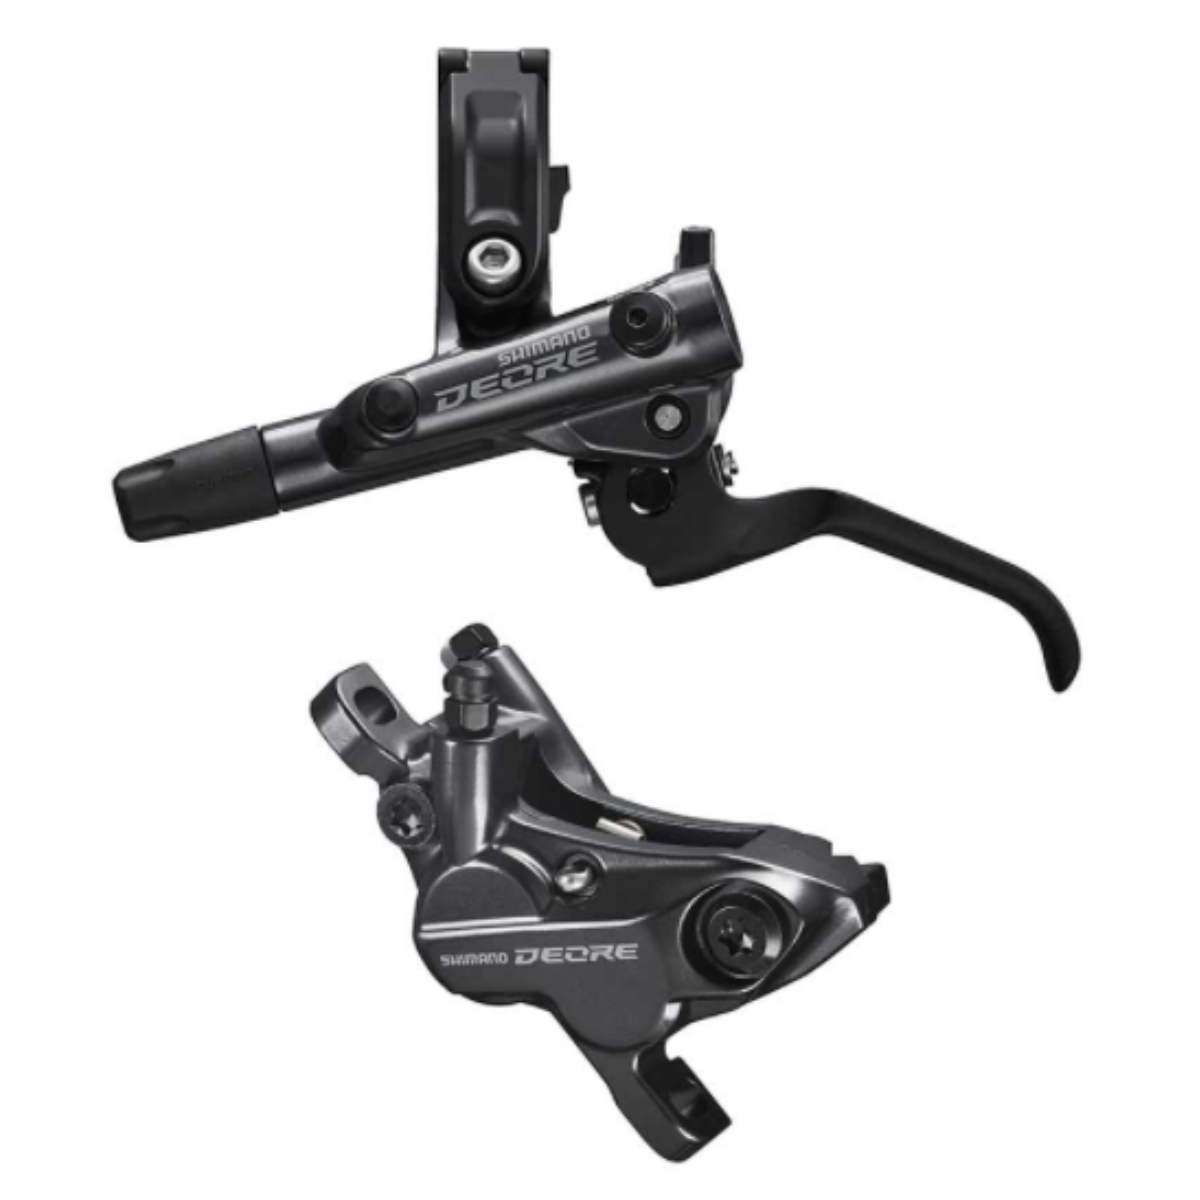 FREIN A DISQUE ARRIERE SHIMANO DEORE BL-M6100 / BR-M6120